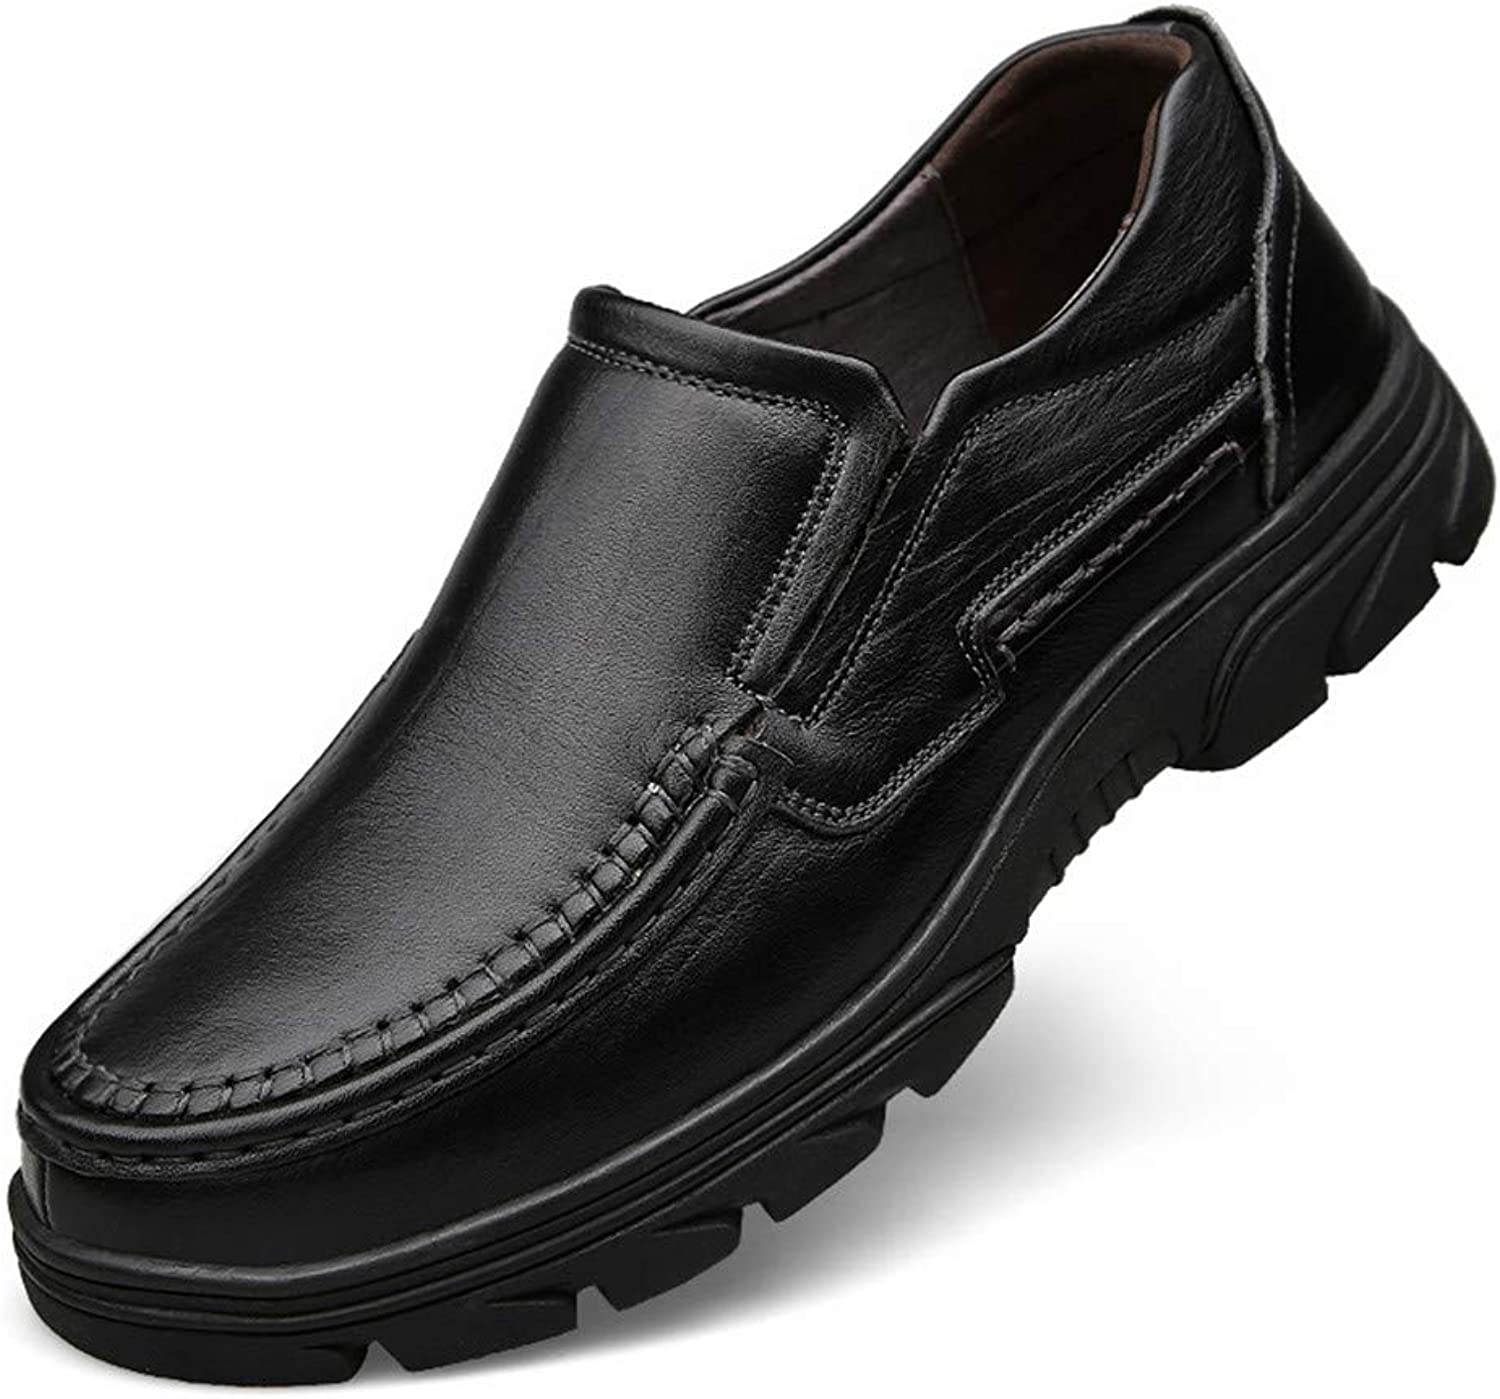 WOJIAO Casual Loafers Driving shoes Men's Slip on Black Brown Flats